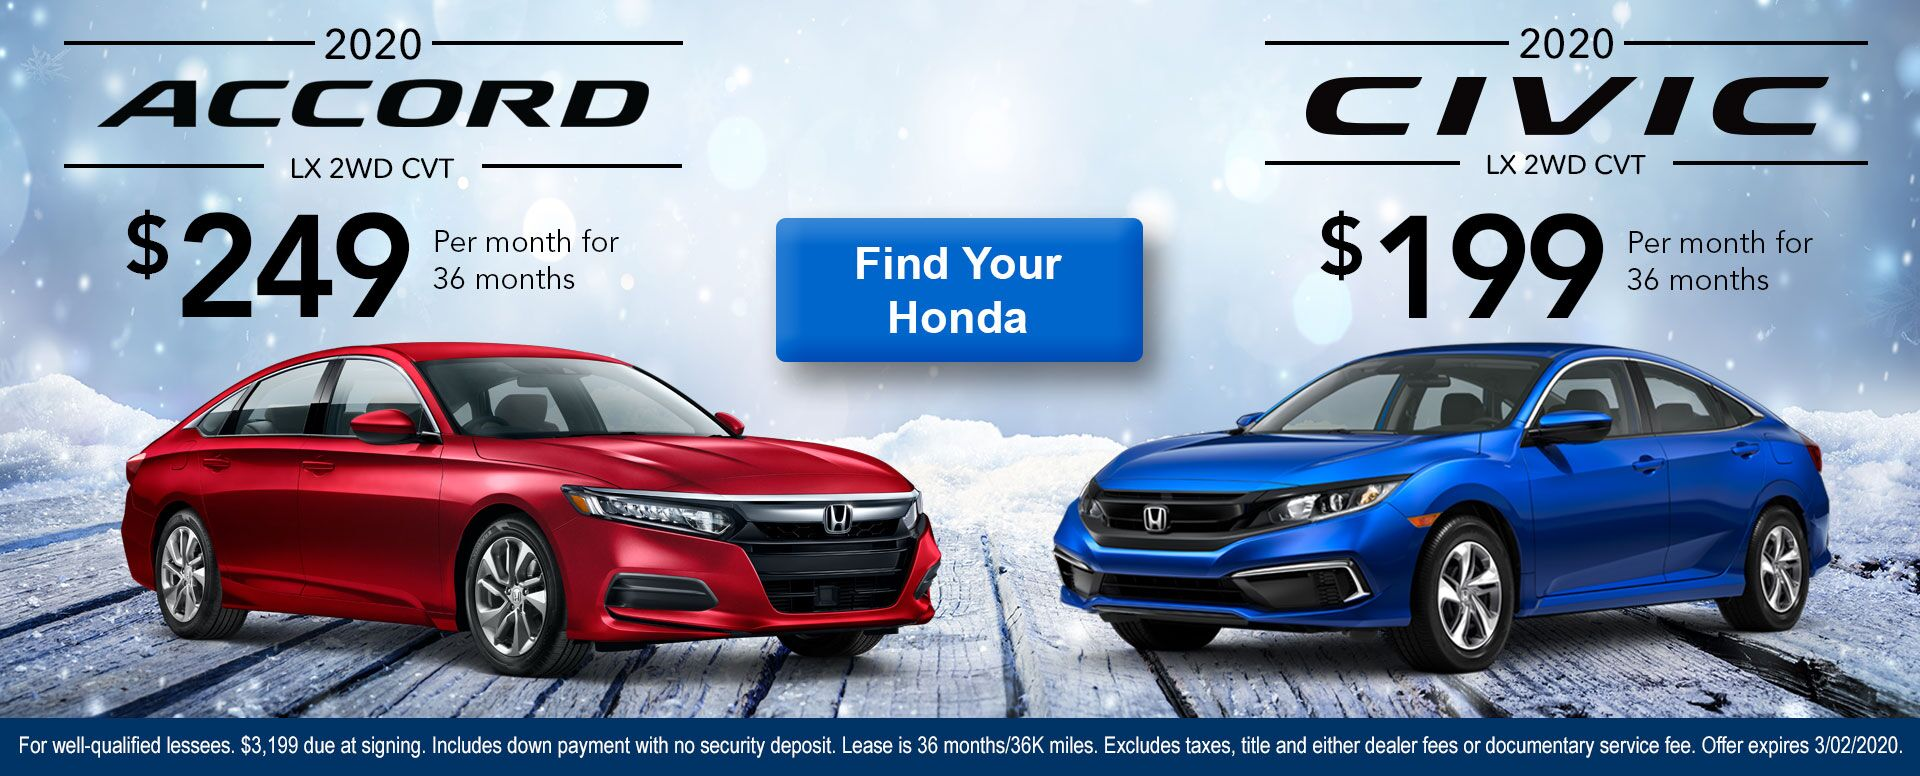 Accord & Civic January Offer